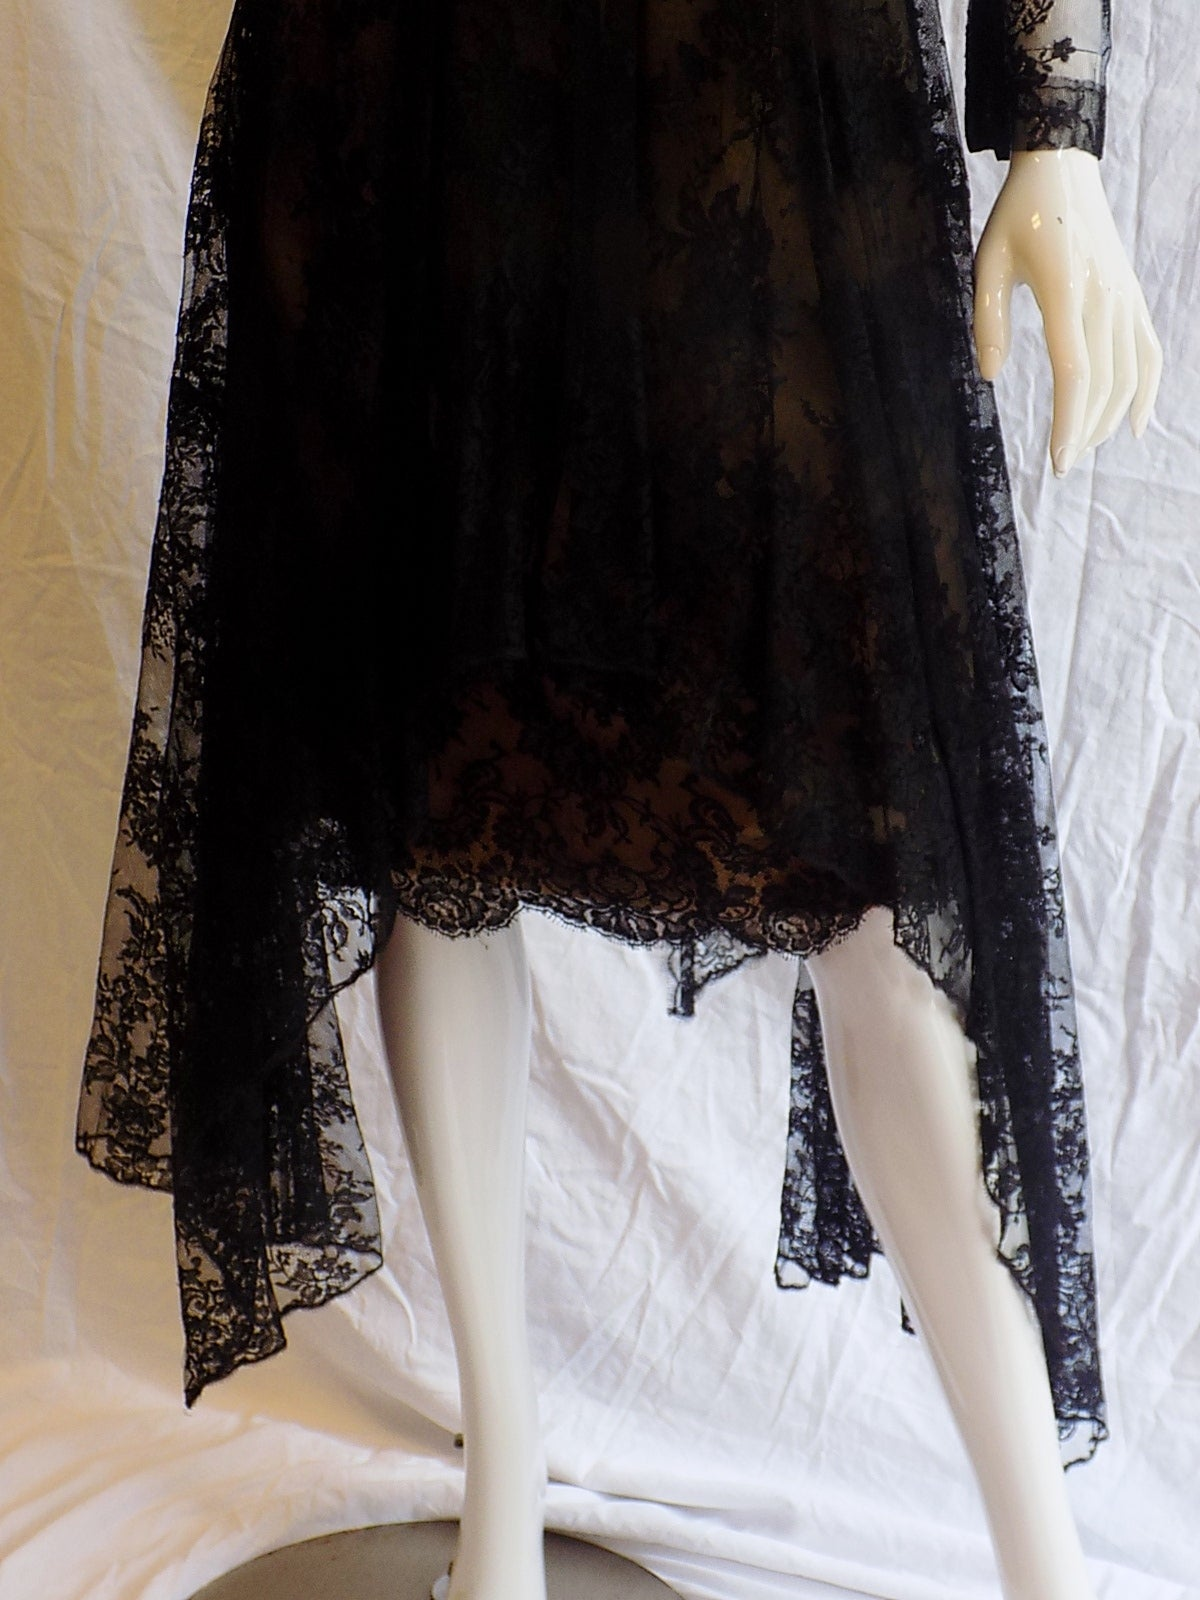 1980 Breathtatking Bill Blass Lace Dress   Rare and Collectable ! For Sale 1